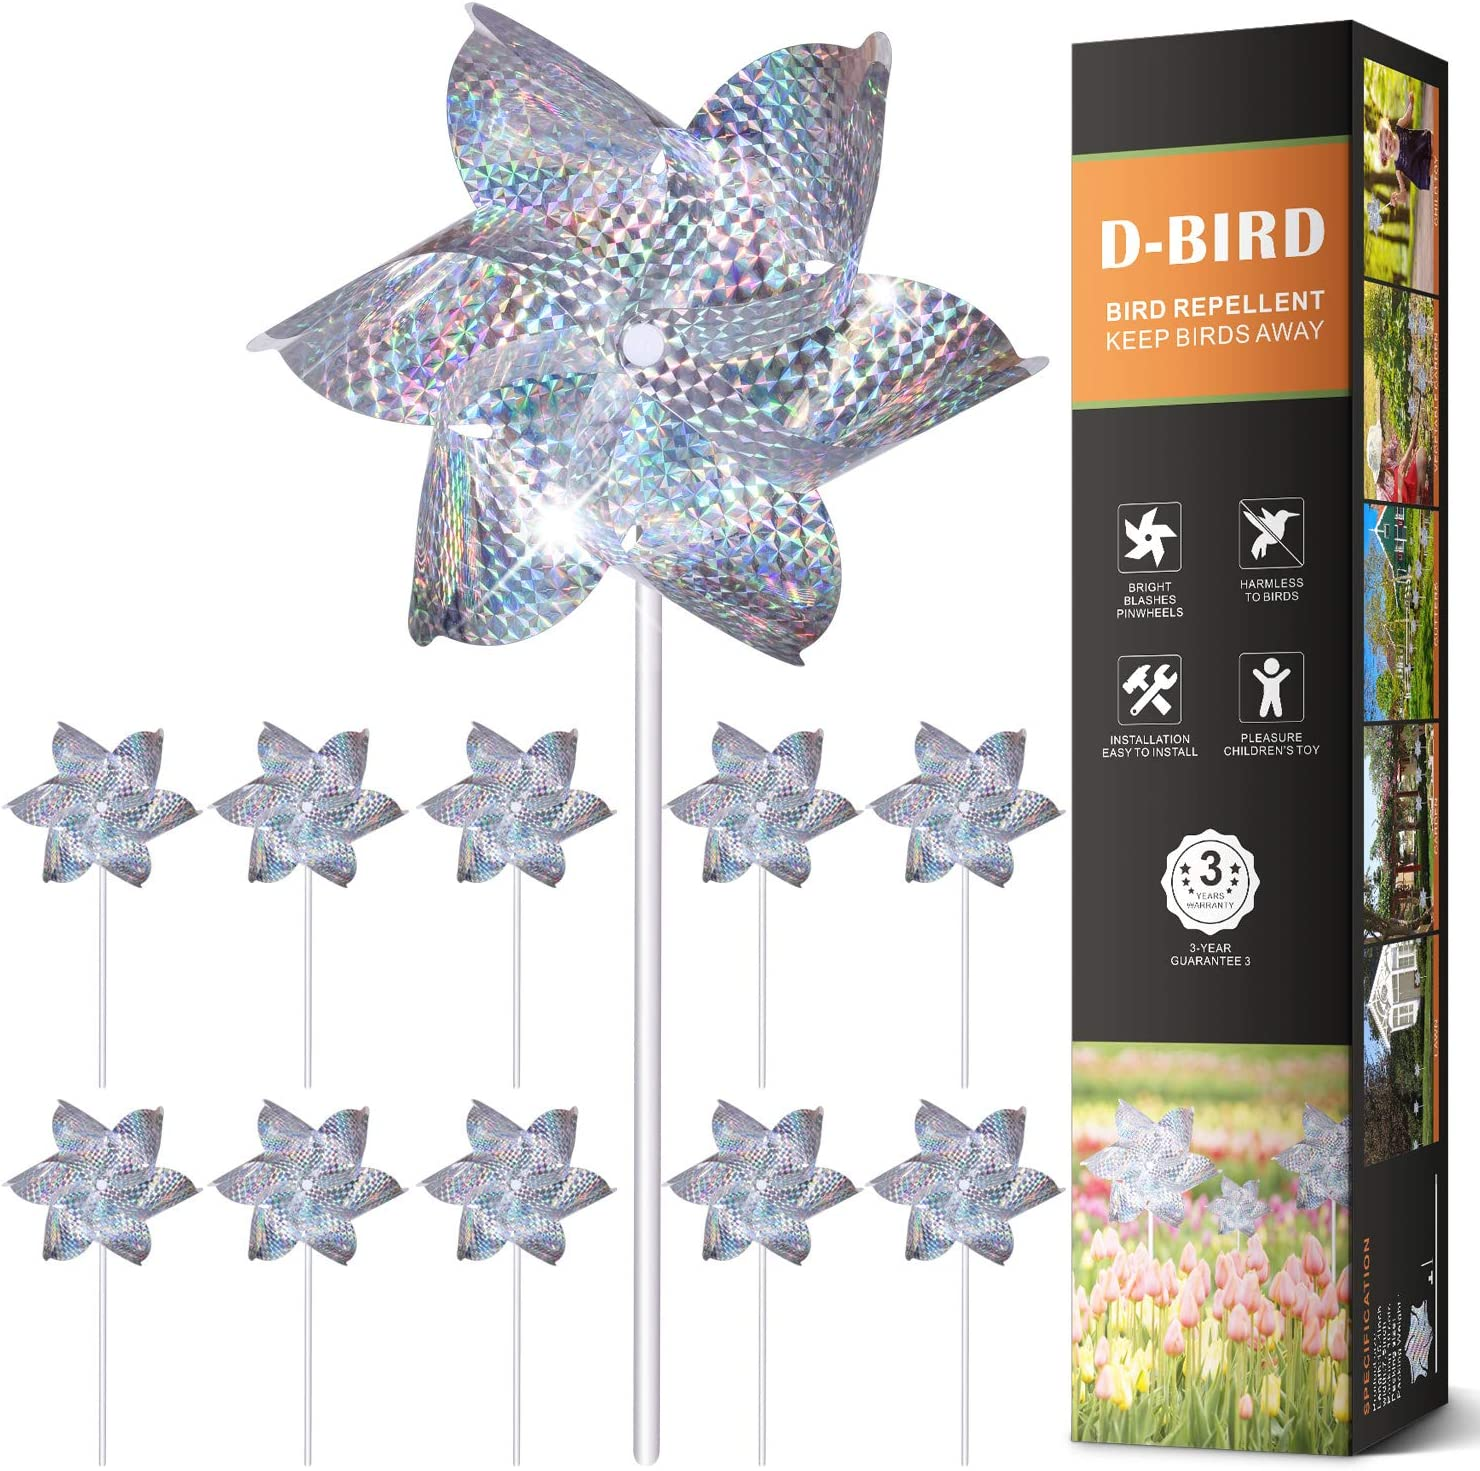 Vctas PinWheels Bird Repellent, High Effective Reflection Materials to Scare Birds Away,Sparkly Silver Spinners, Scare Birds away-10 Pack